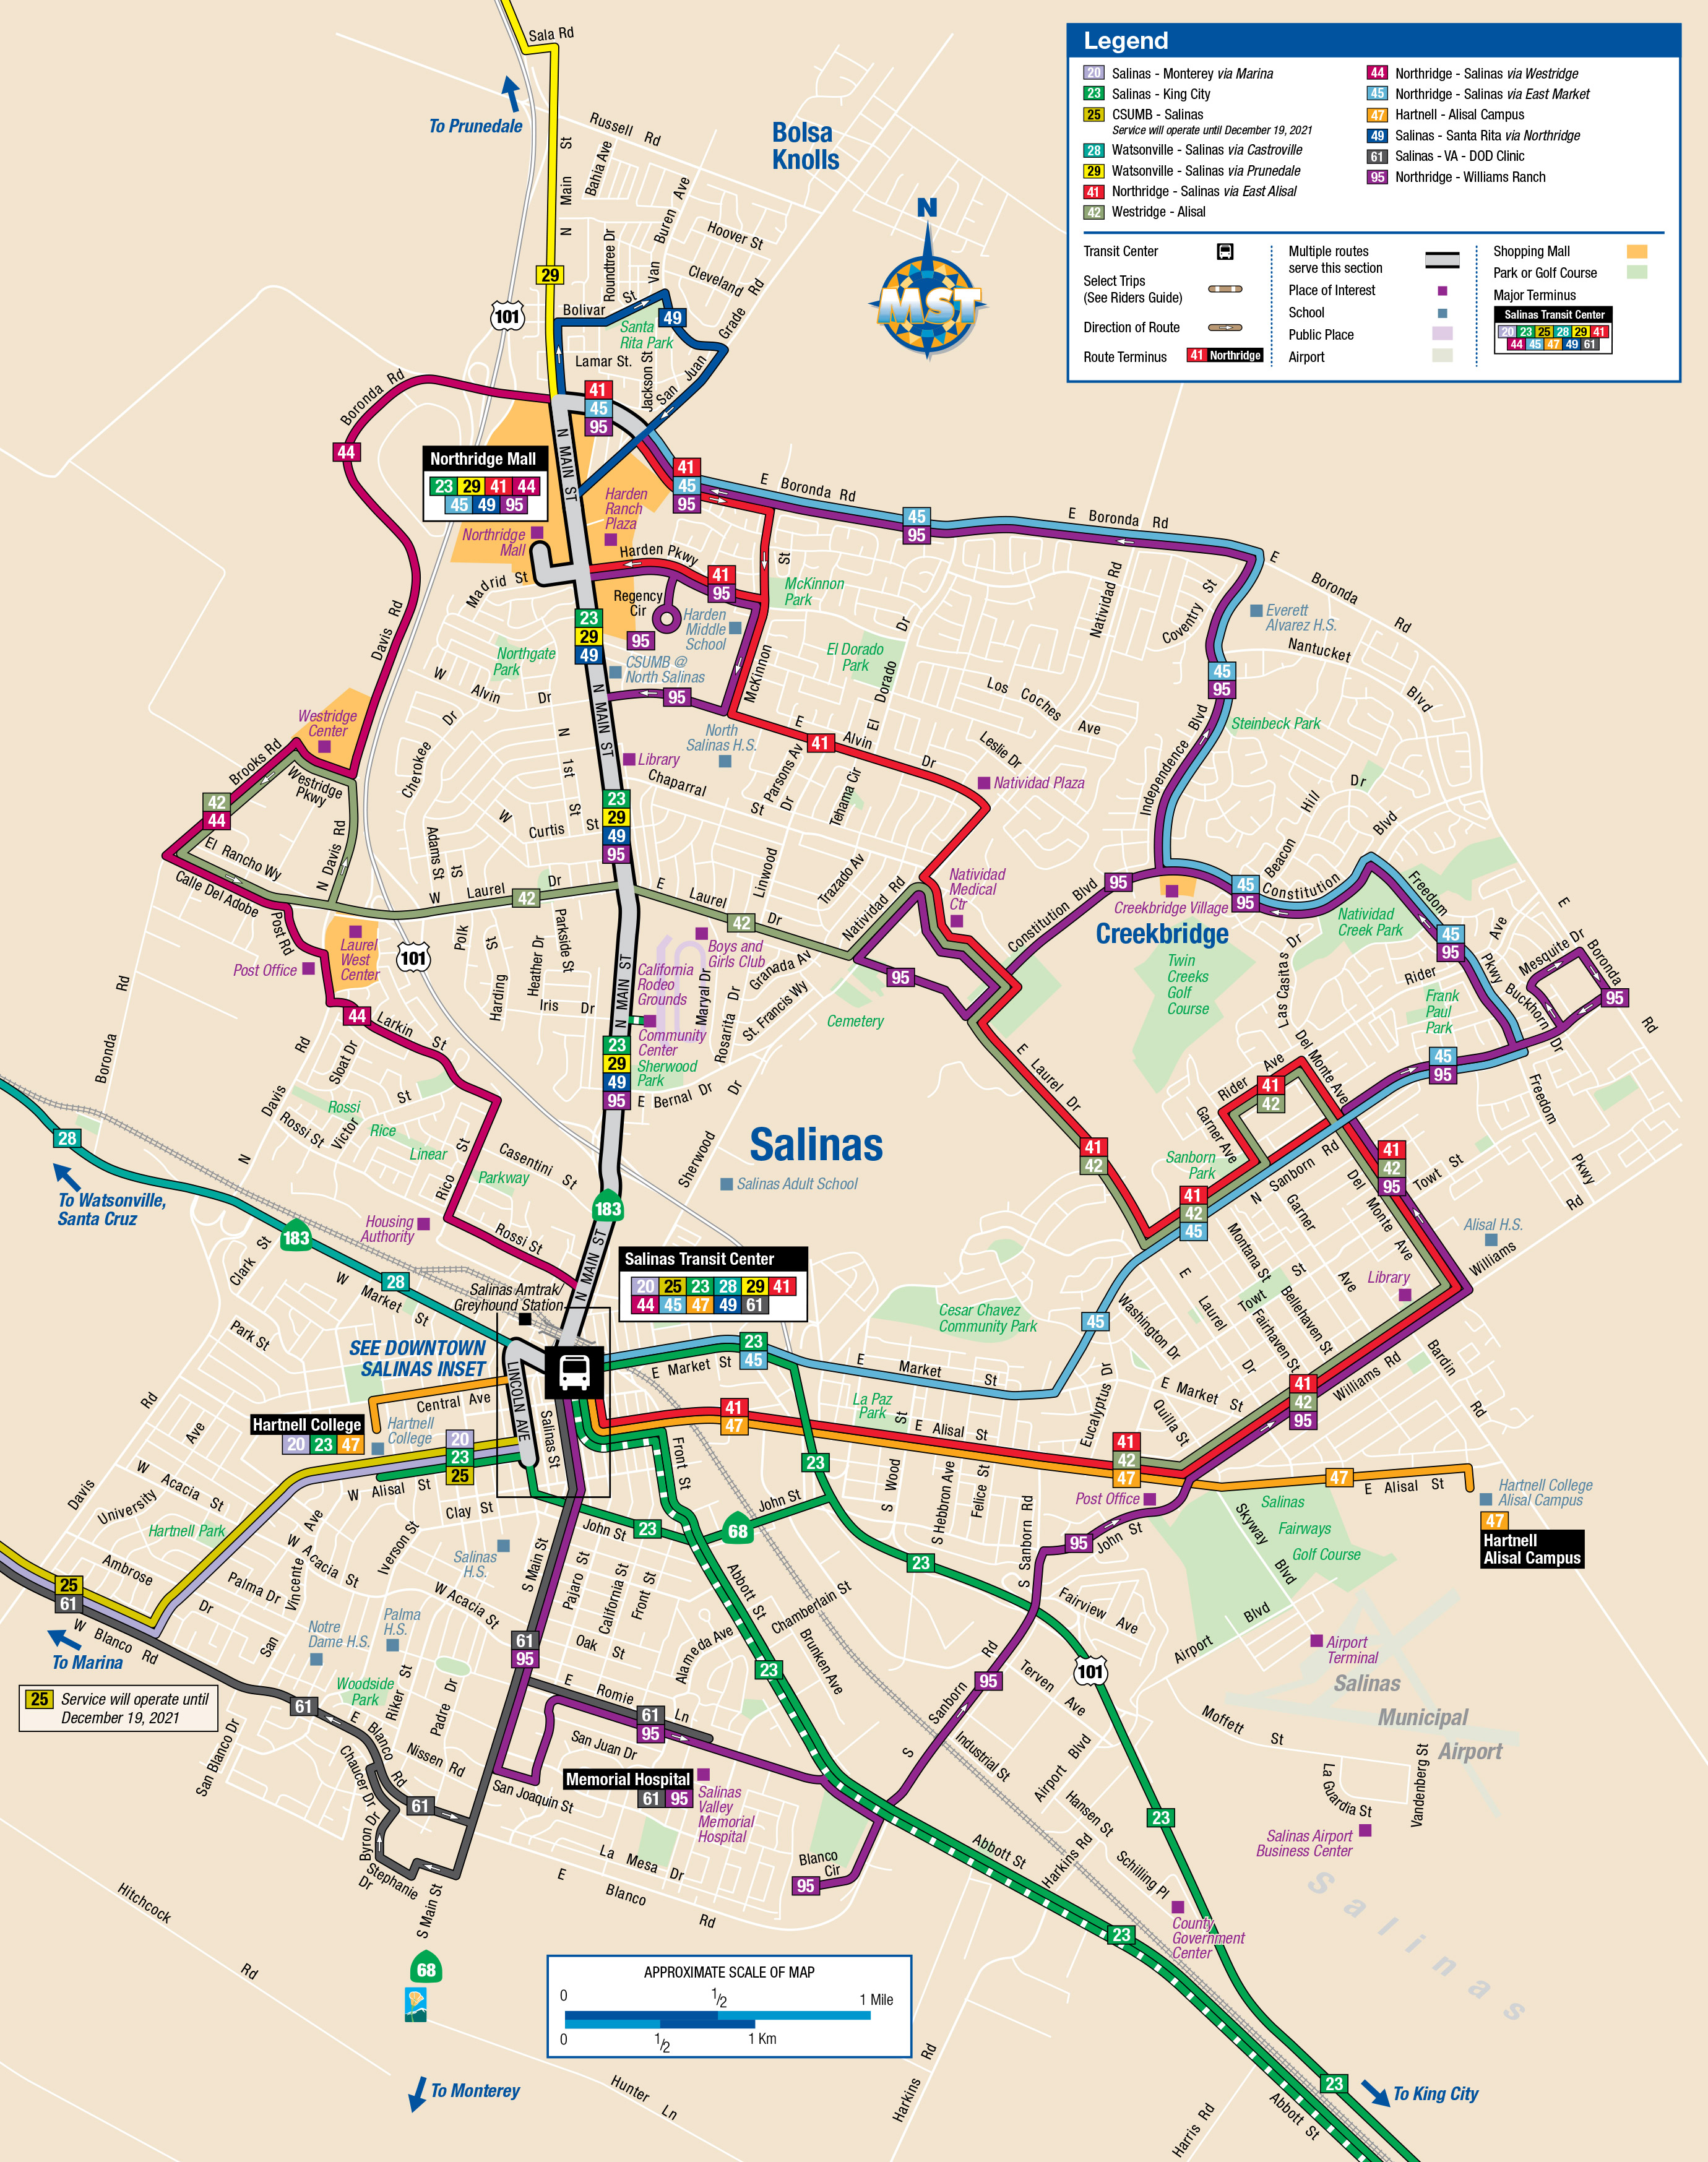 salinas system mapincludes routes that travel through the city of salinas